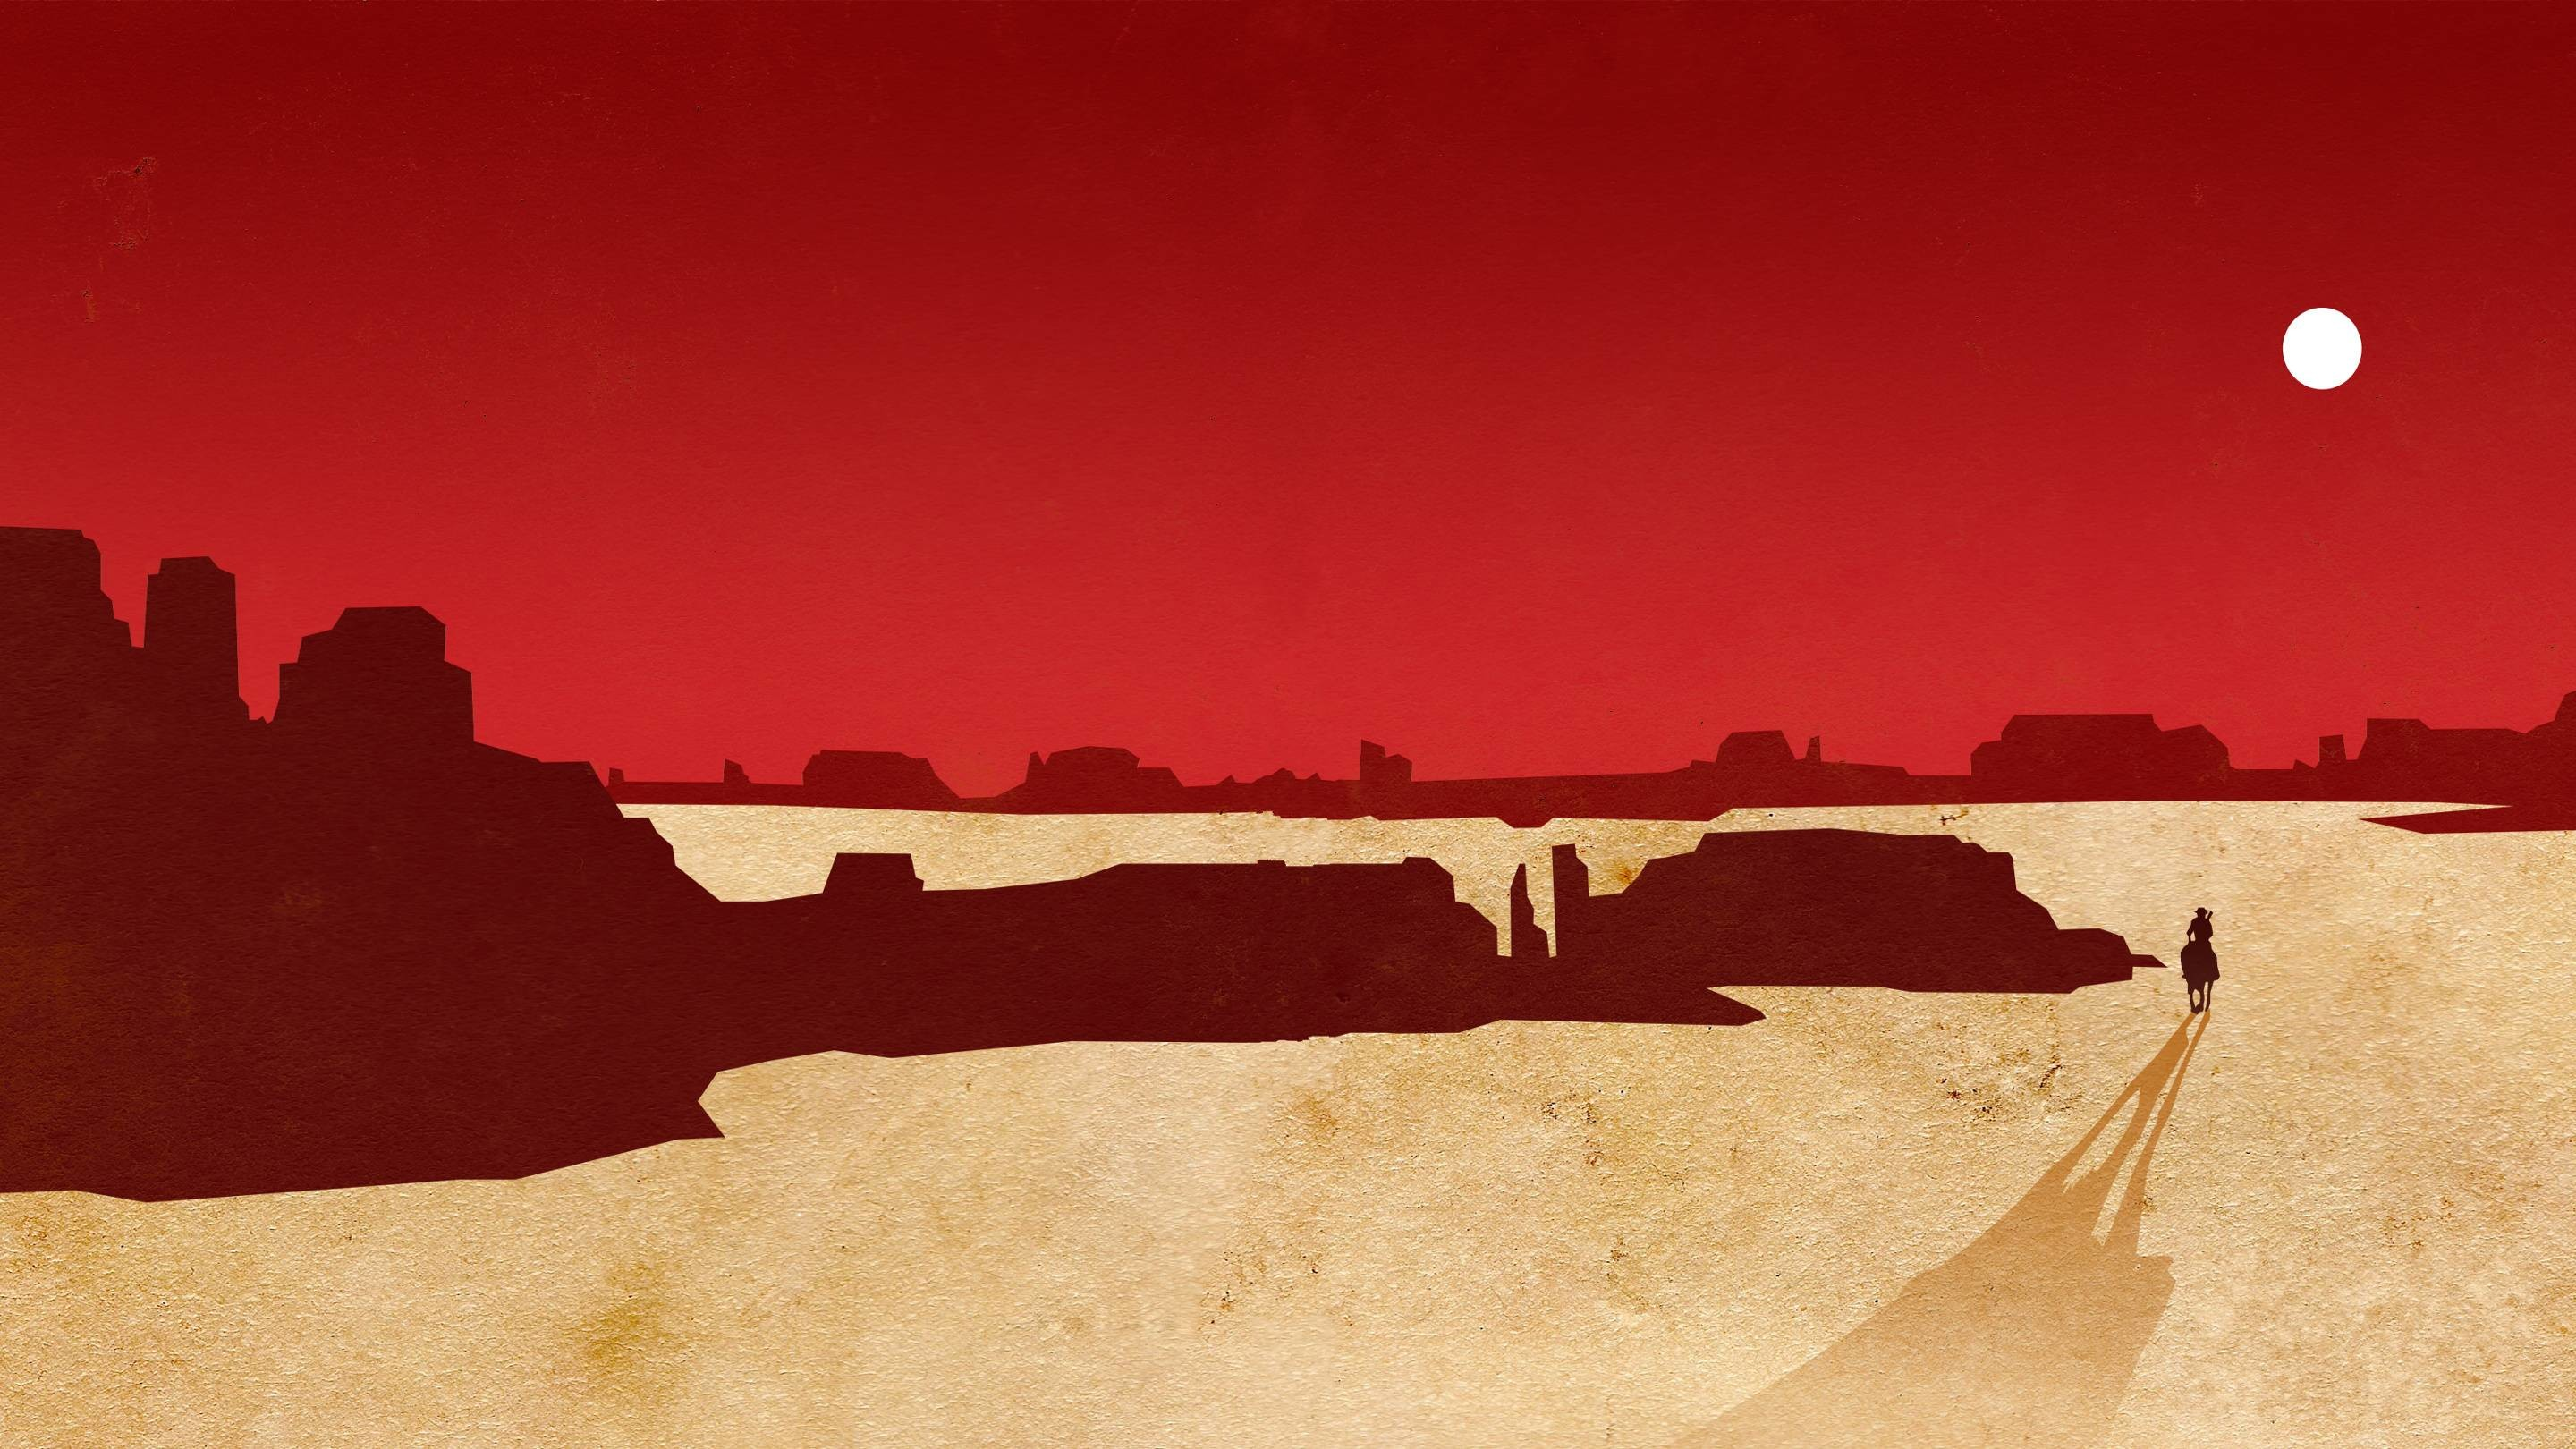 2880x1620 ... red dead redemption wallpapers high quality download free ...